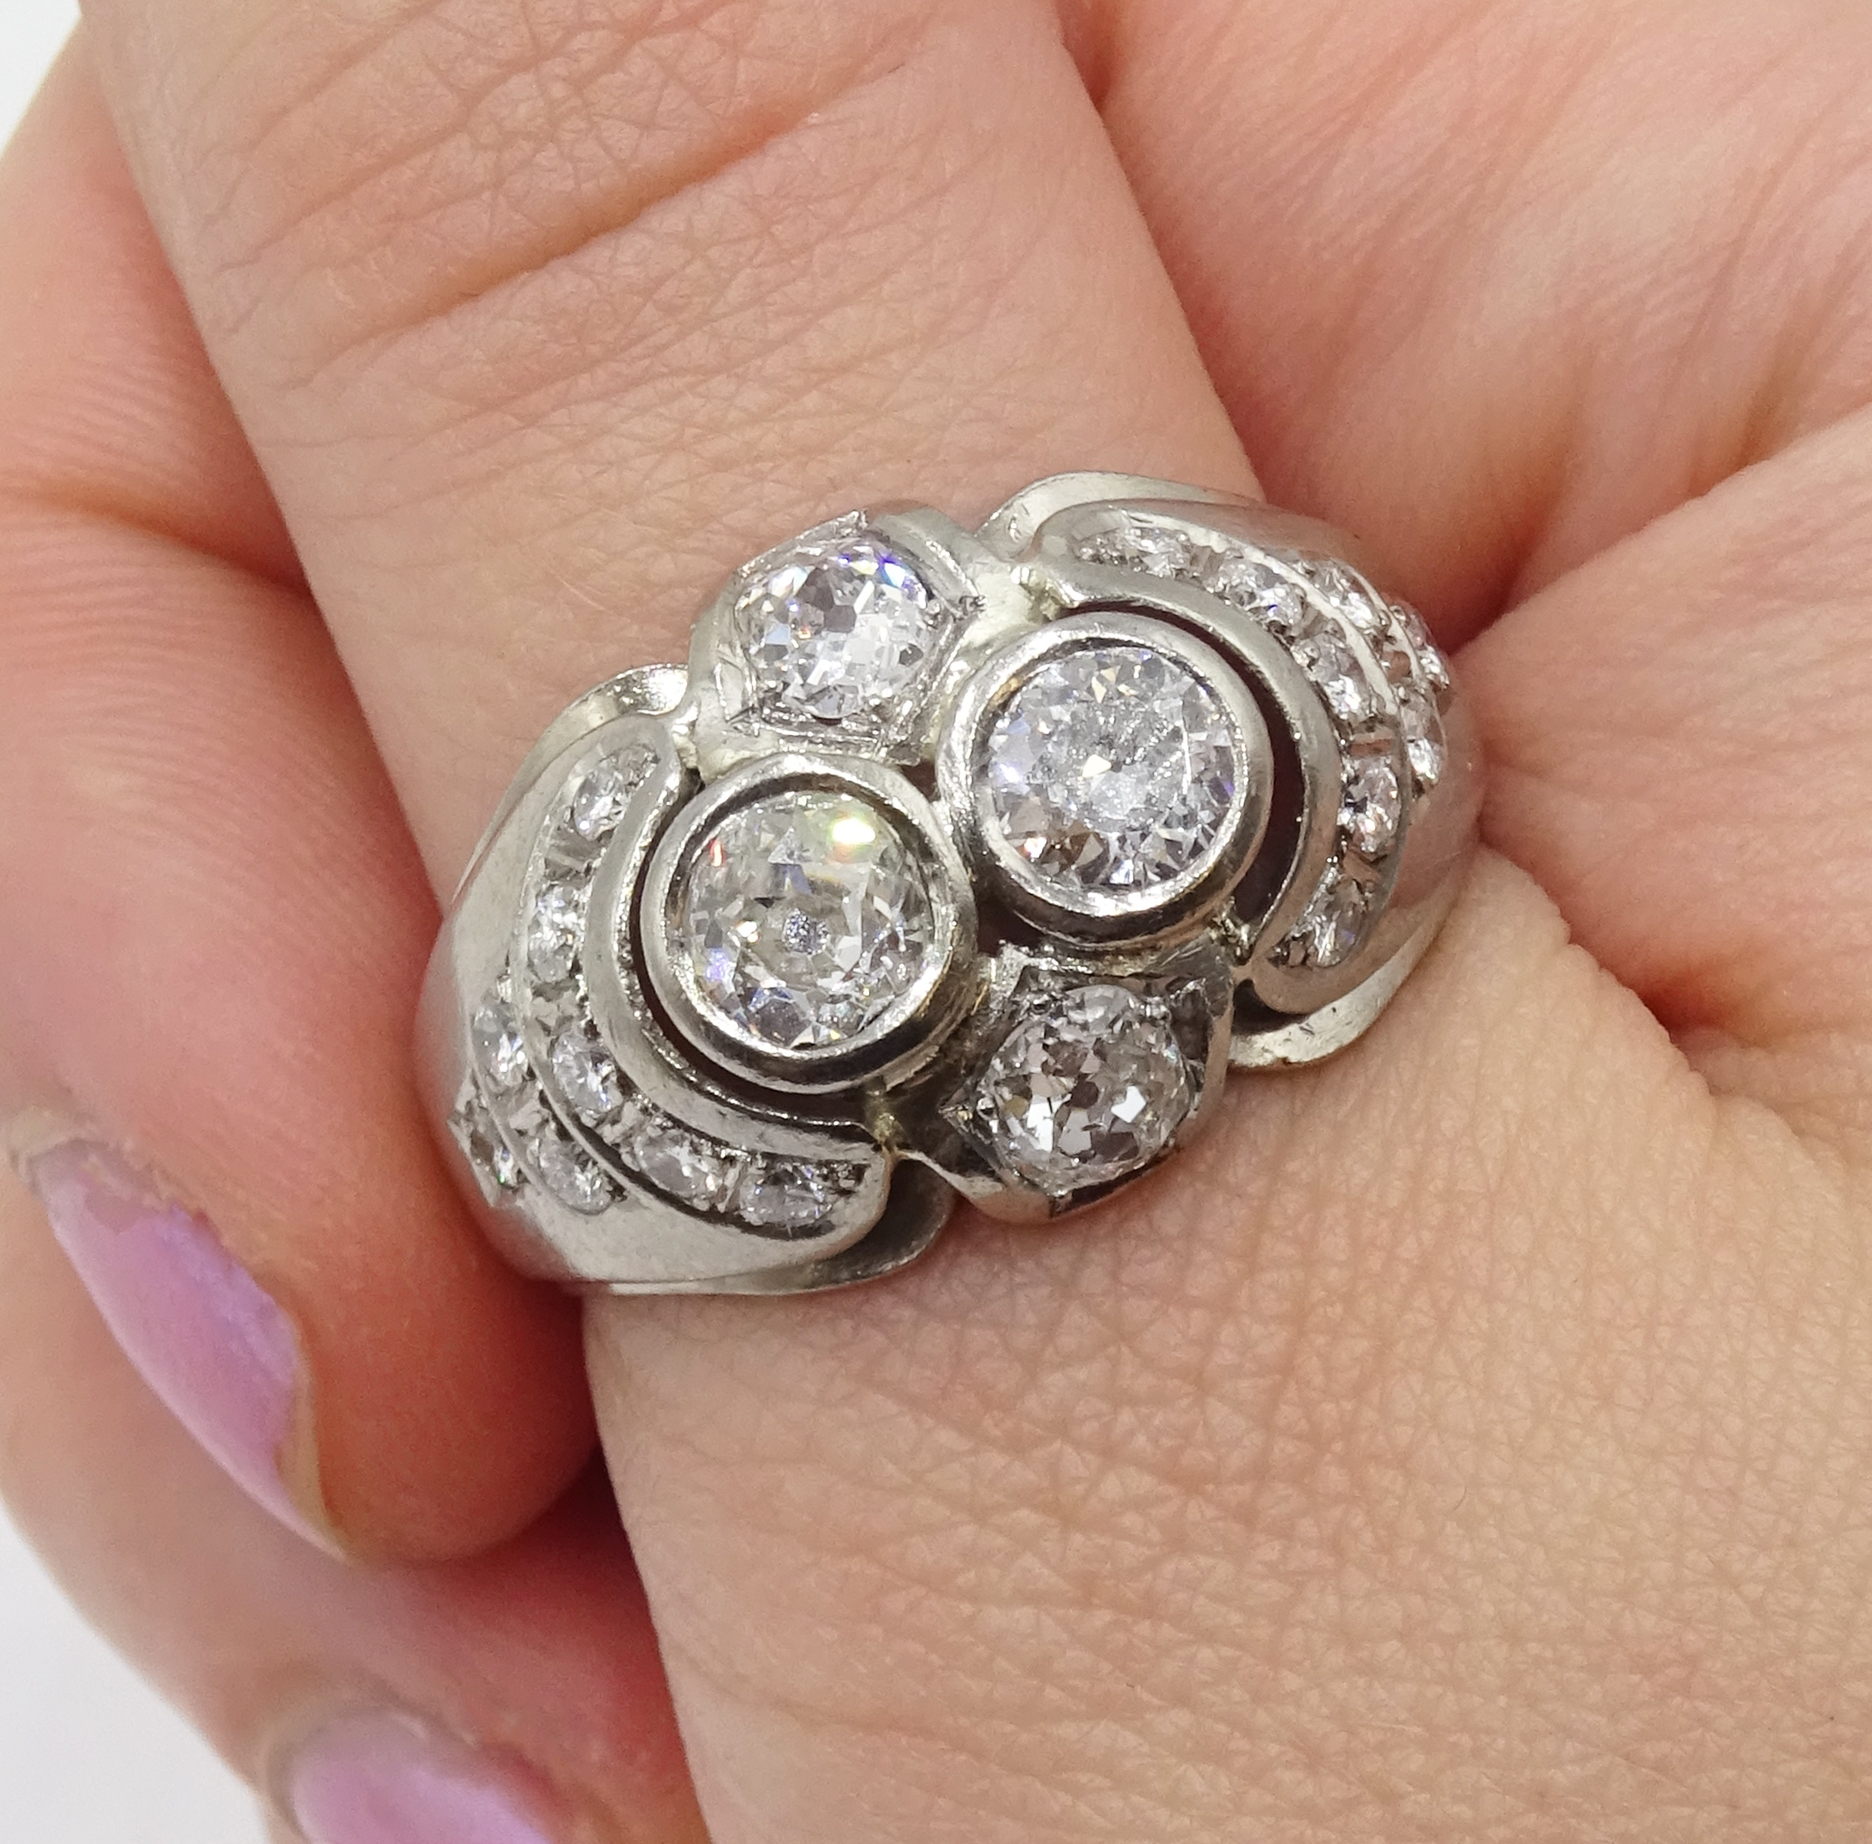 Continental 14ct white gold old cut and round brilliant cut diamond ring - Image 2 of 5